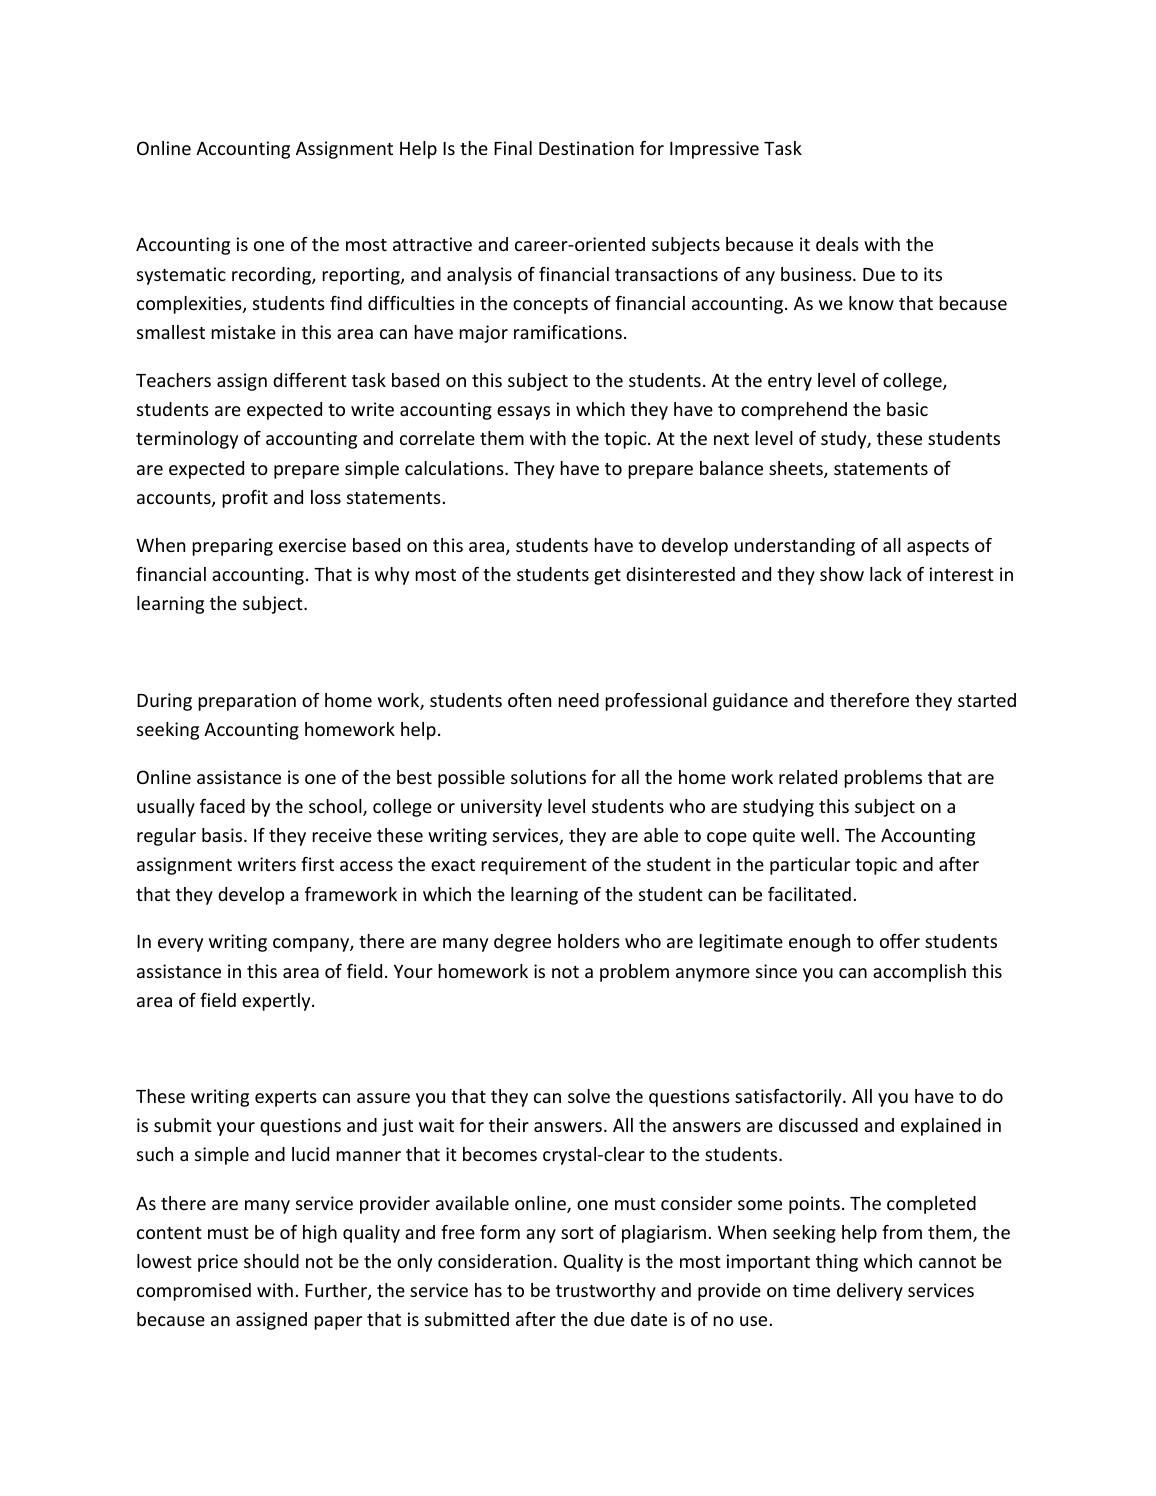 Abstract Definition Essay  Nursing Entrance Essay also The Curious Incident Of The Dog In The Nighttime Essay Accounting Essay By Accountessaywrite  Issuu If I Won The Lottery Essay